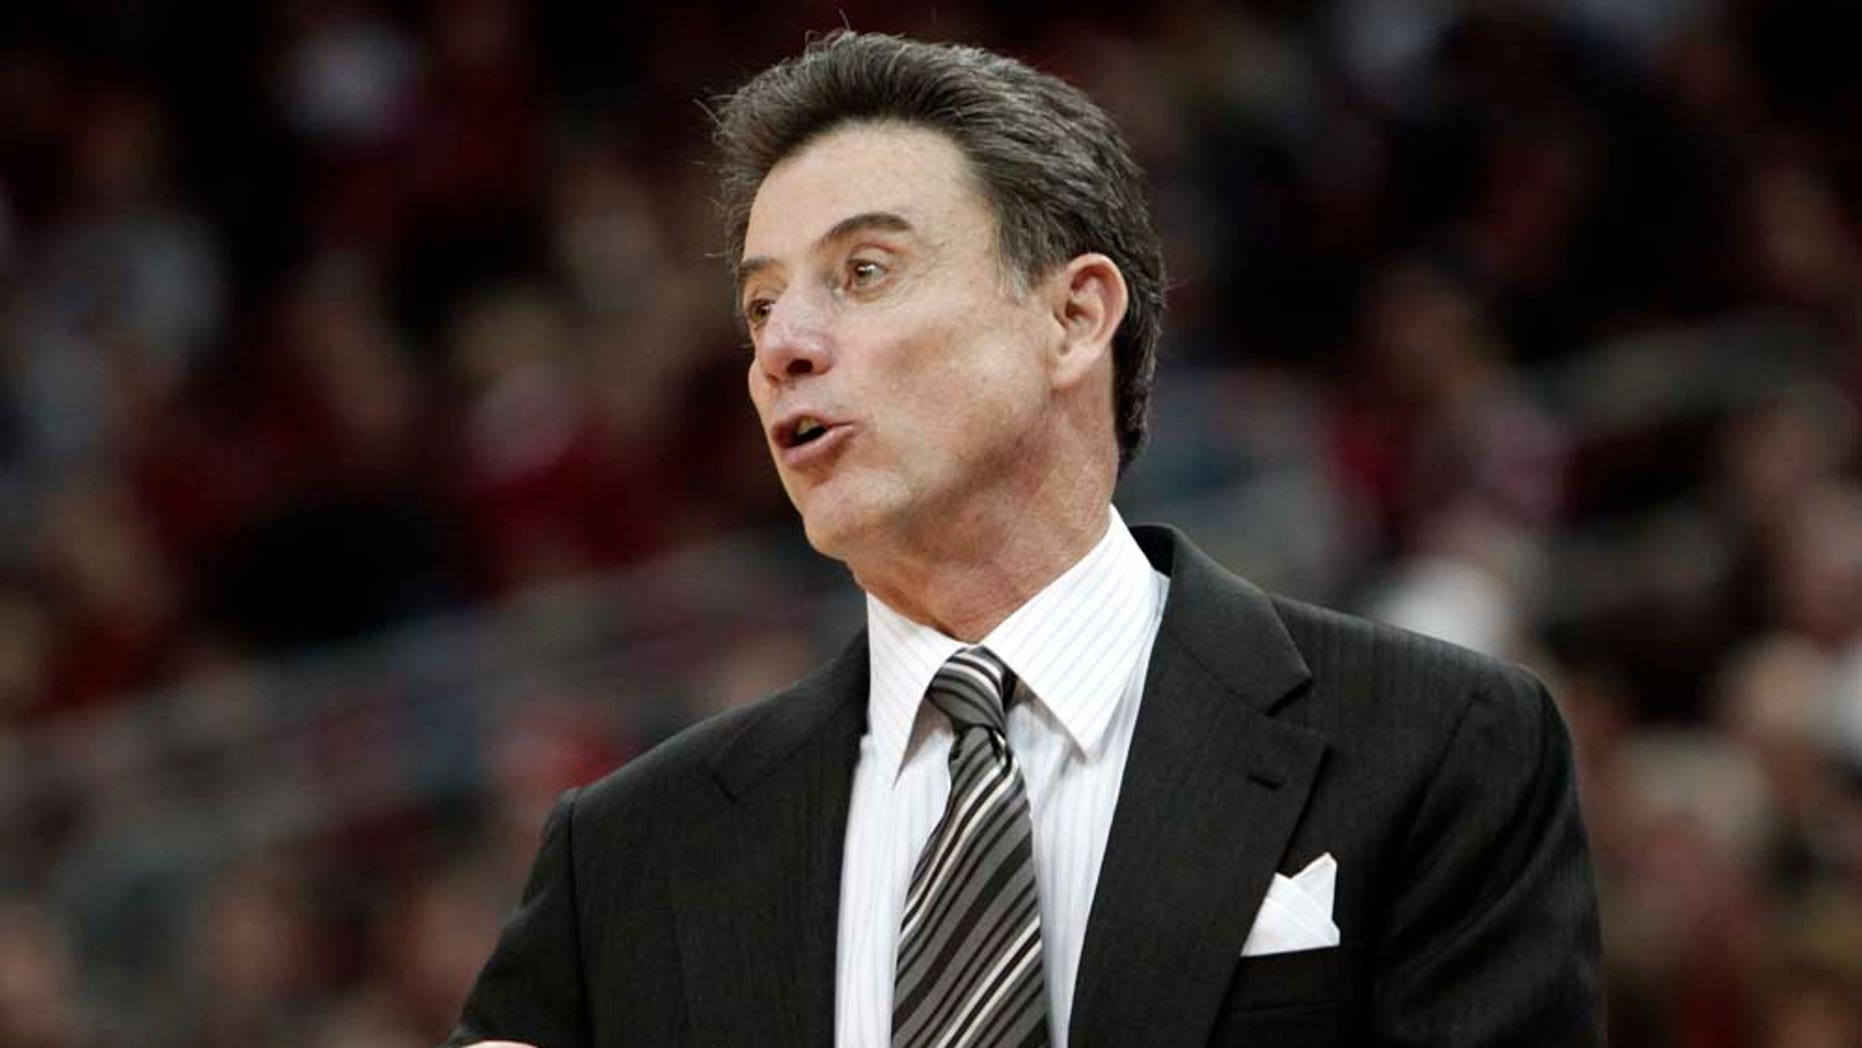 Louisville coach Rick Pitino gives instructions to his team in their NCAA college basketball game against Gardner-Webb in Louisville, Ky., Saturday, Dec. 18, 2010. No. 20 Louisville beat Gardner-Webb 78-49.  (AP Photo/Garry Jones)